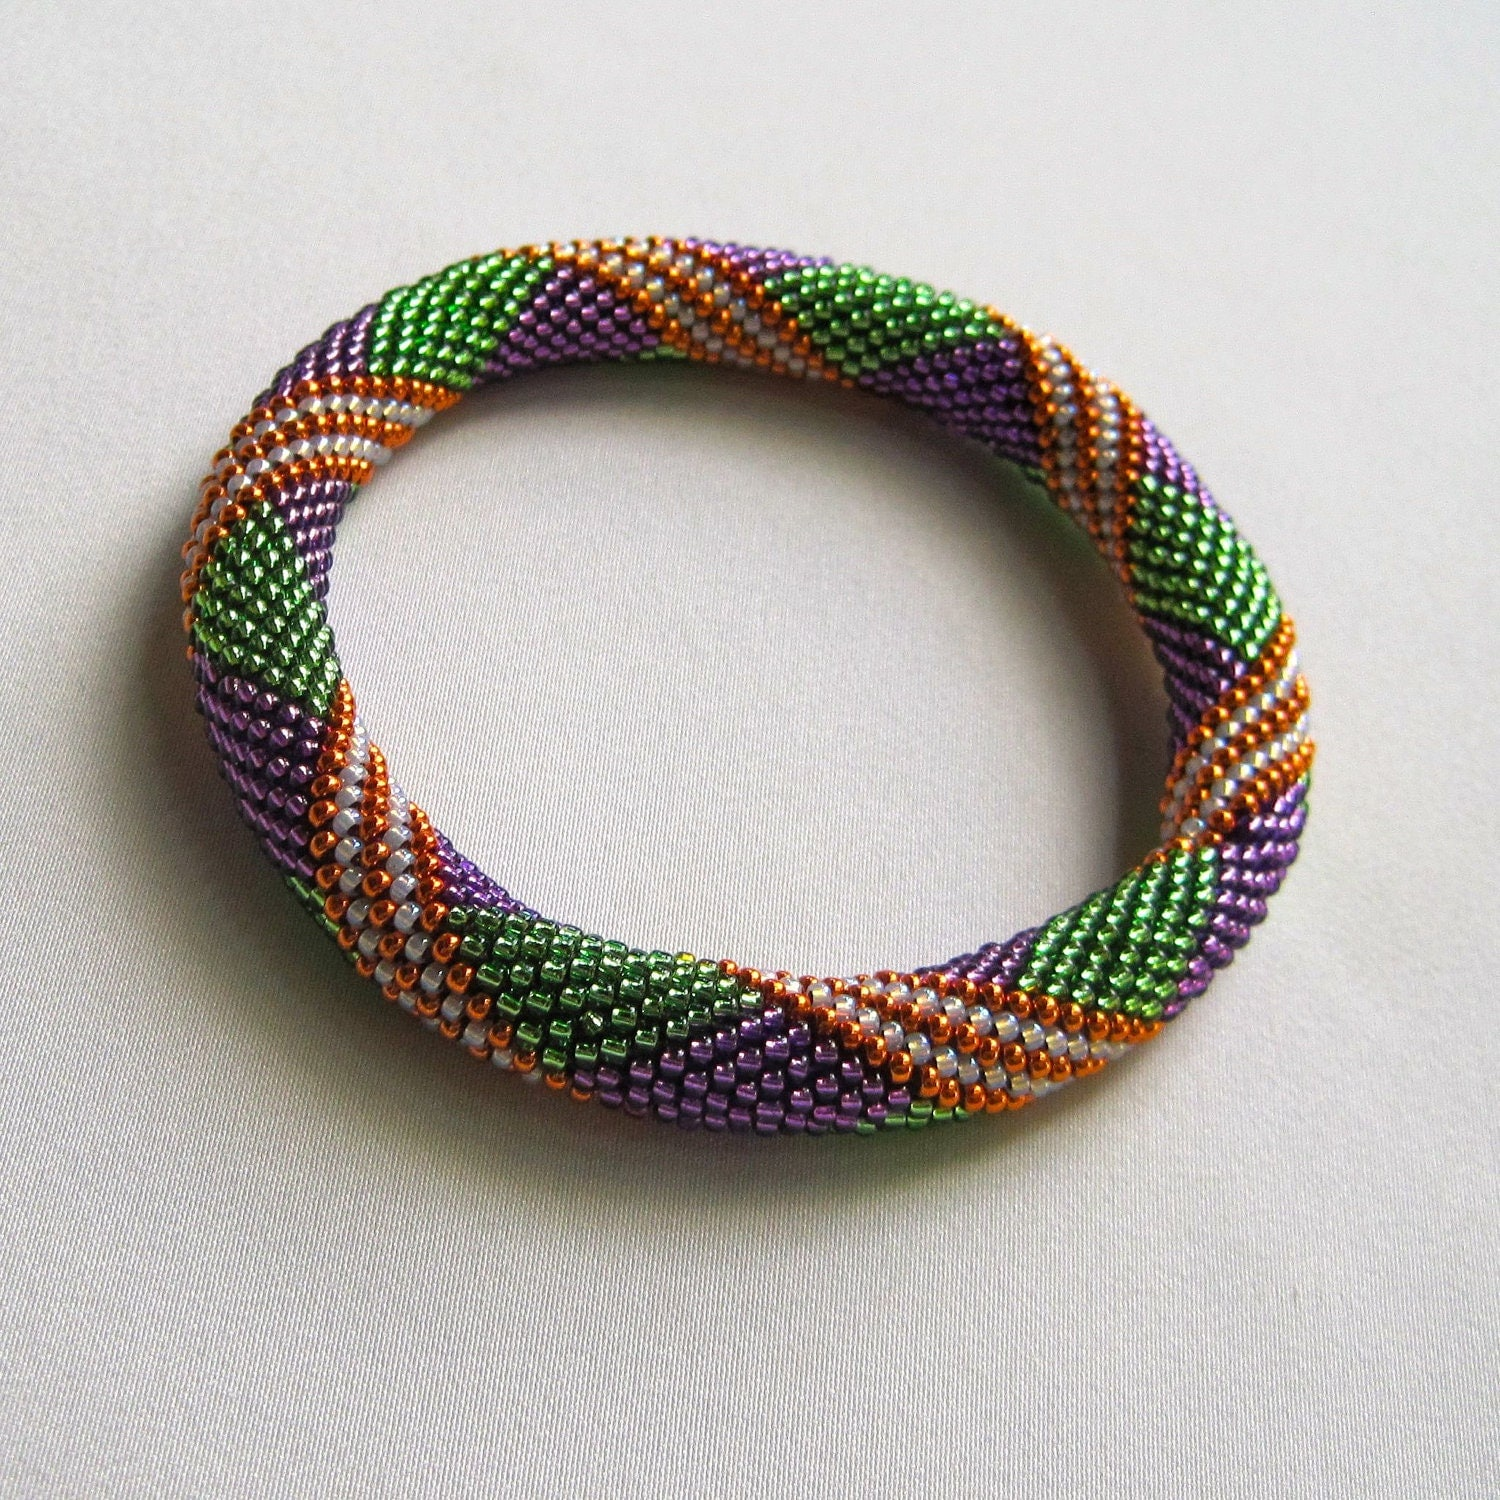 Bead Crochet : Bead Crochet Pattern: Parallelogram Bead by WearableArtEmporium